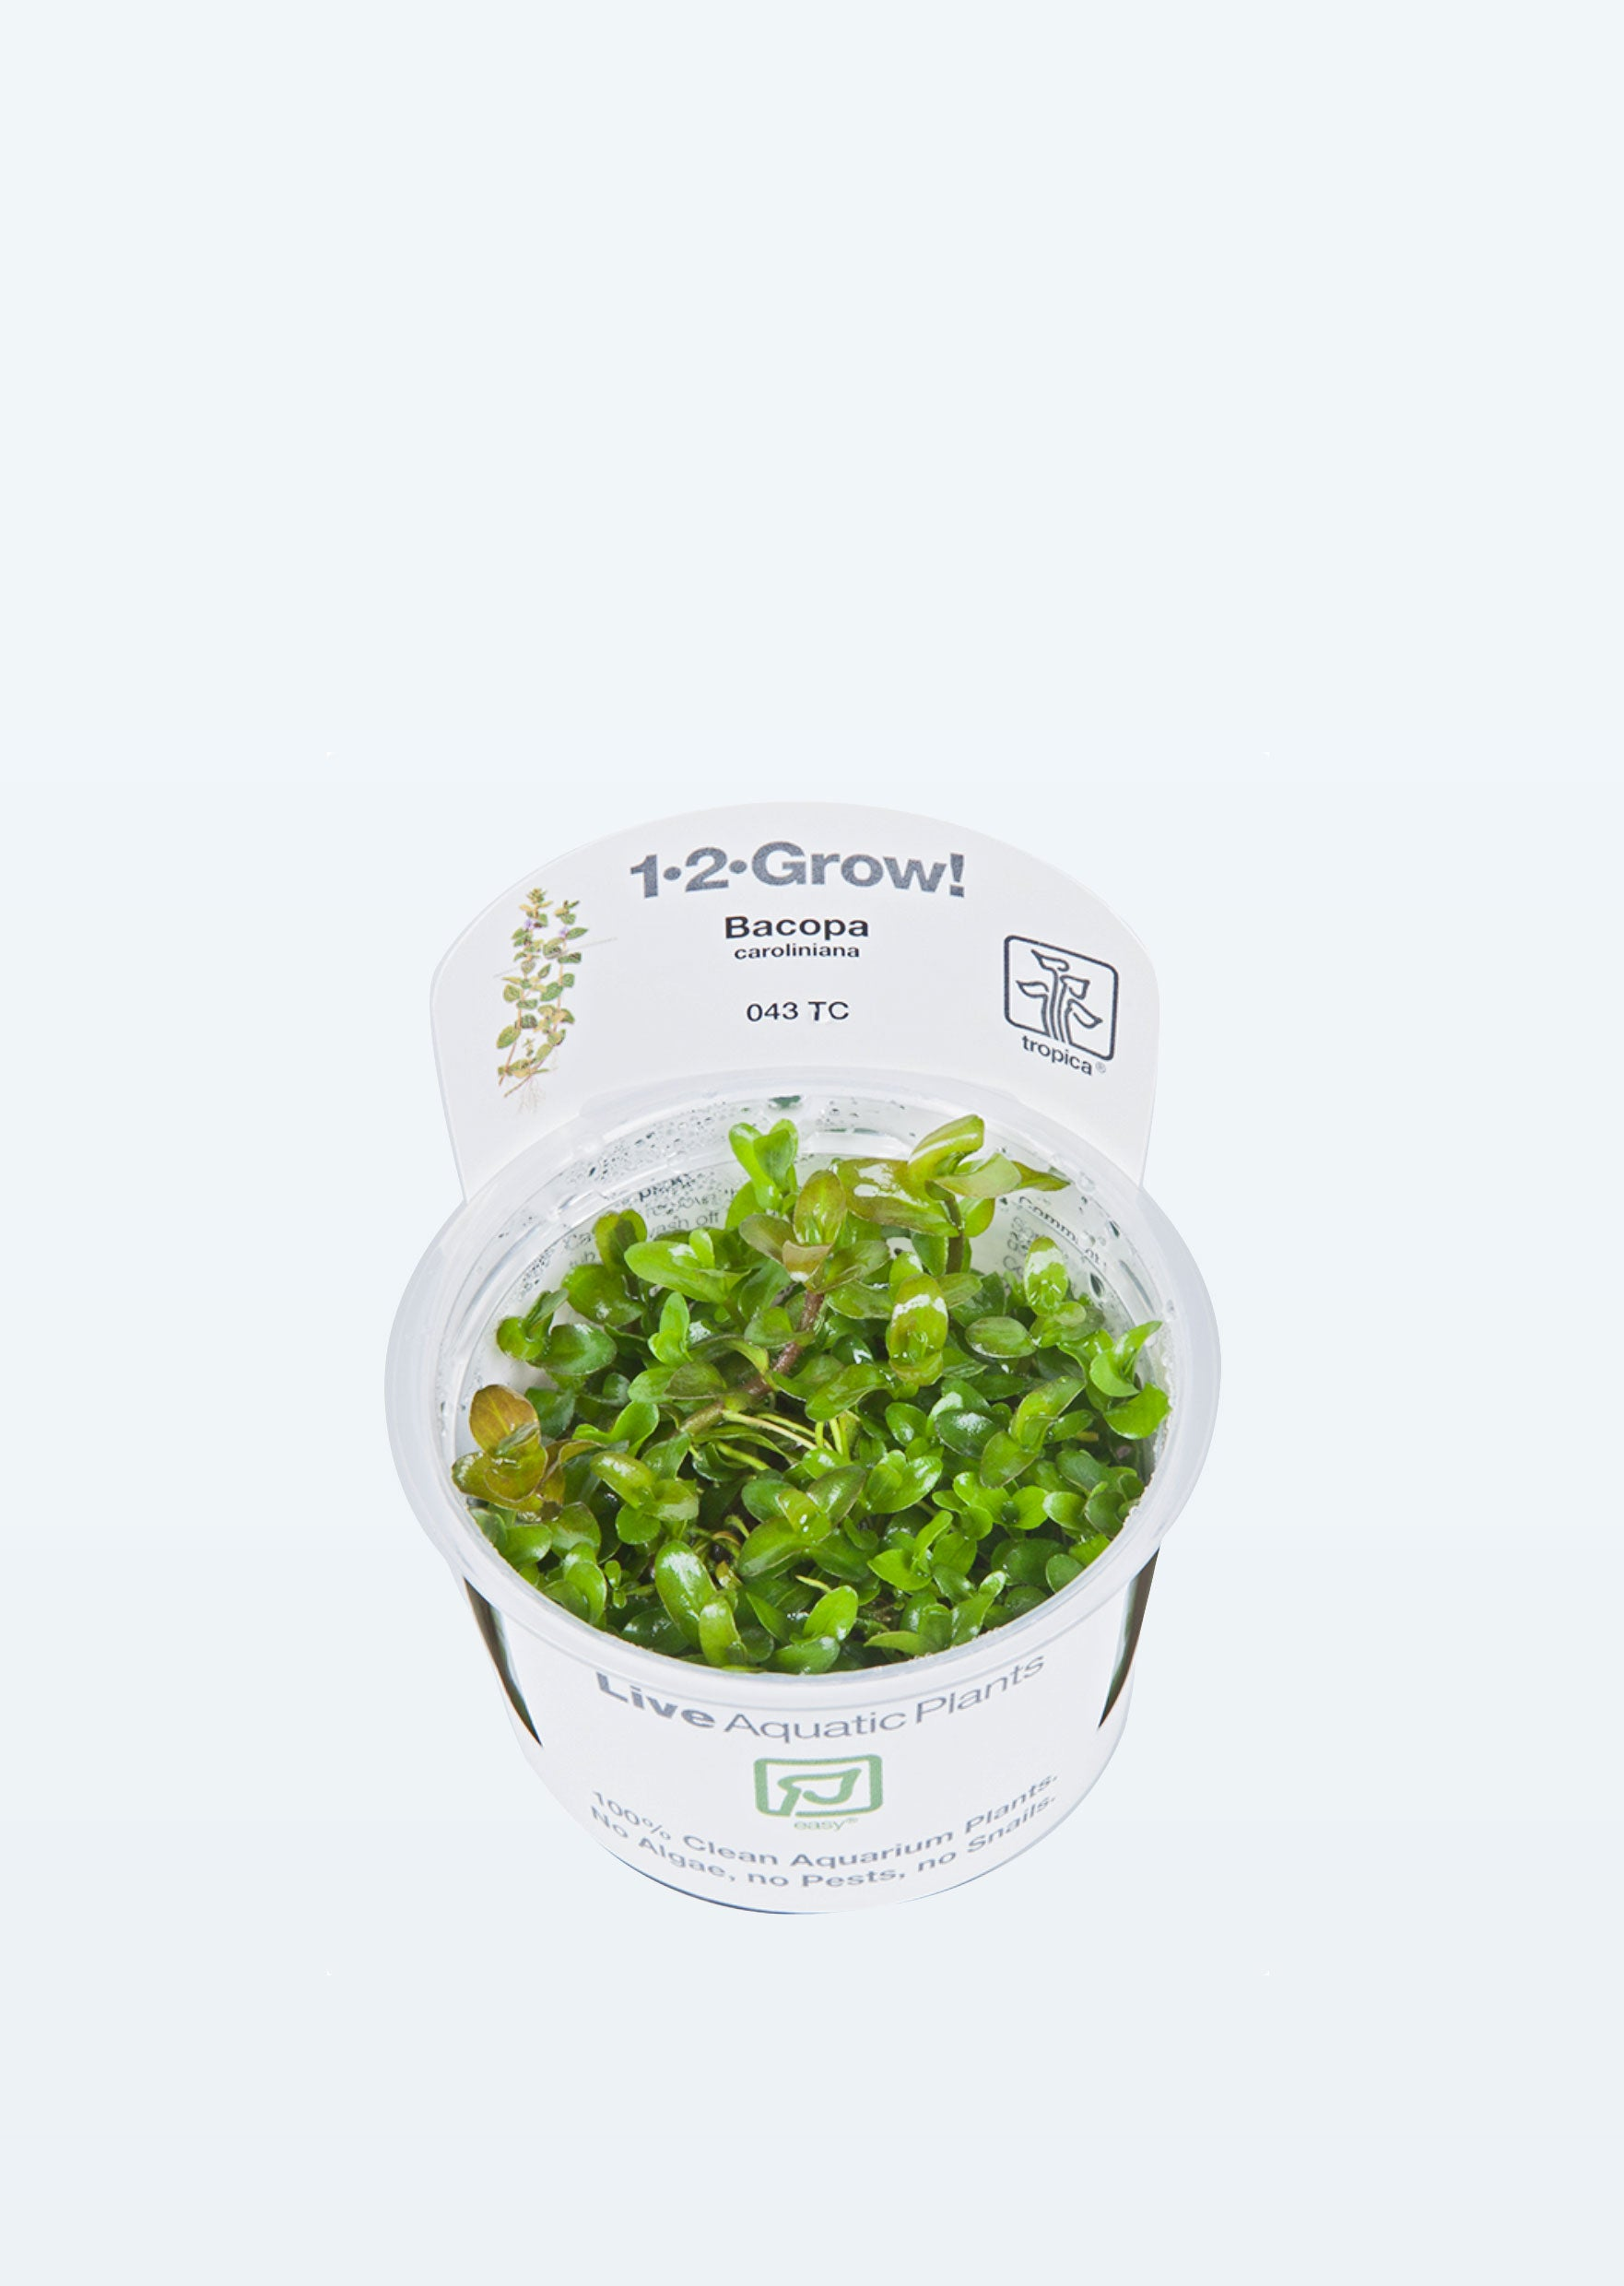 1-2-Grow! Bacopa caroliniana